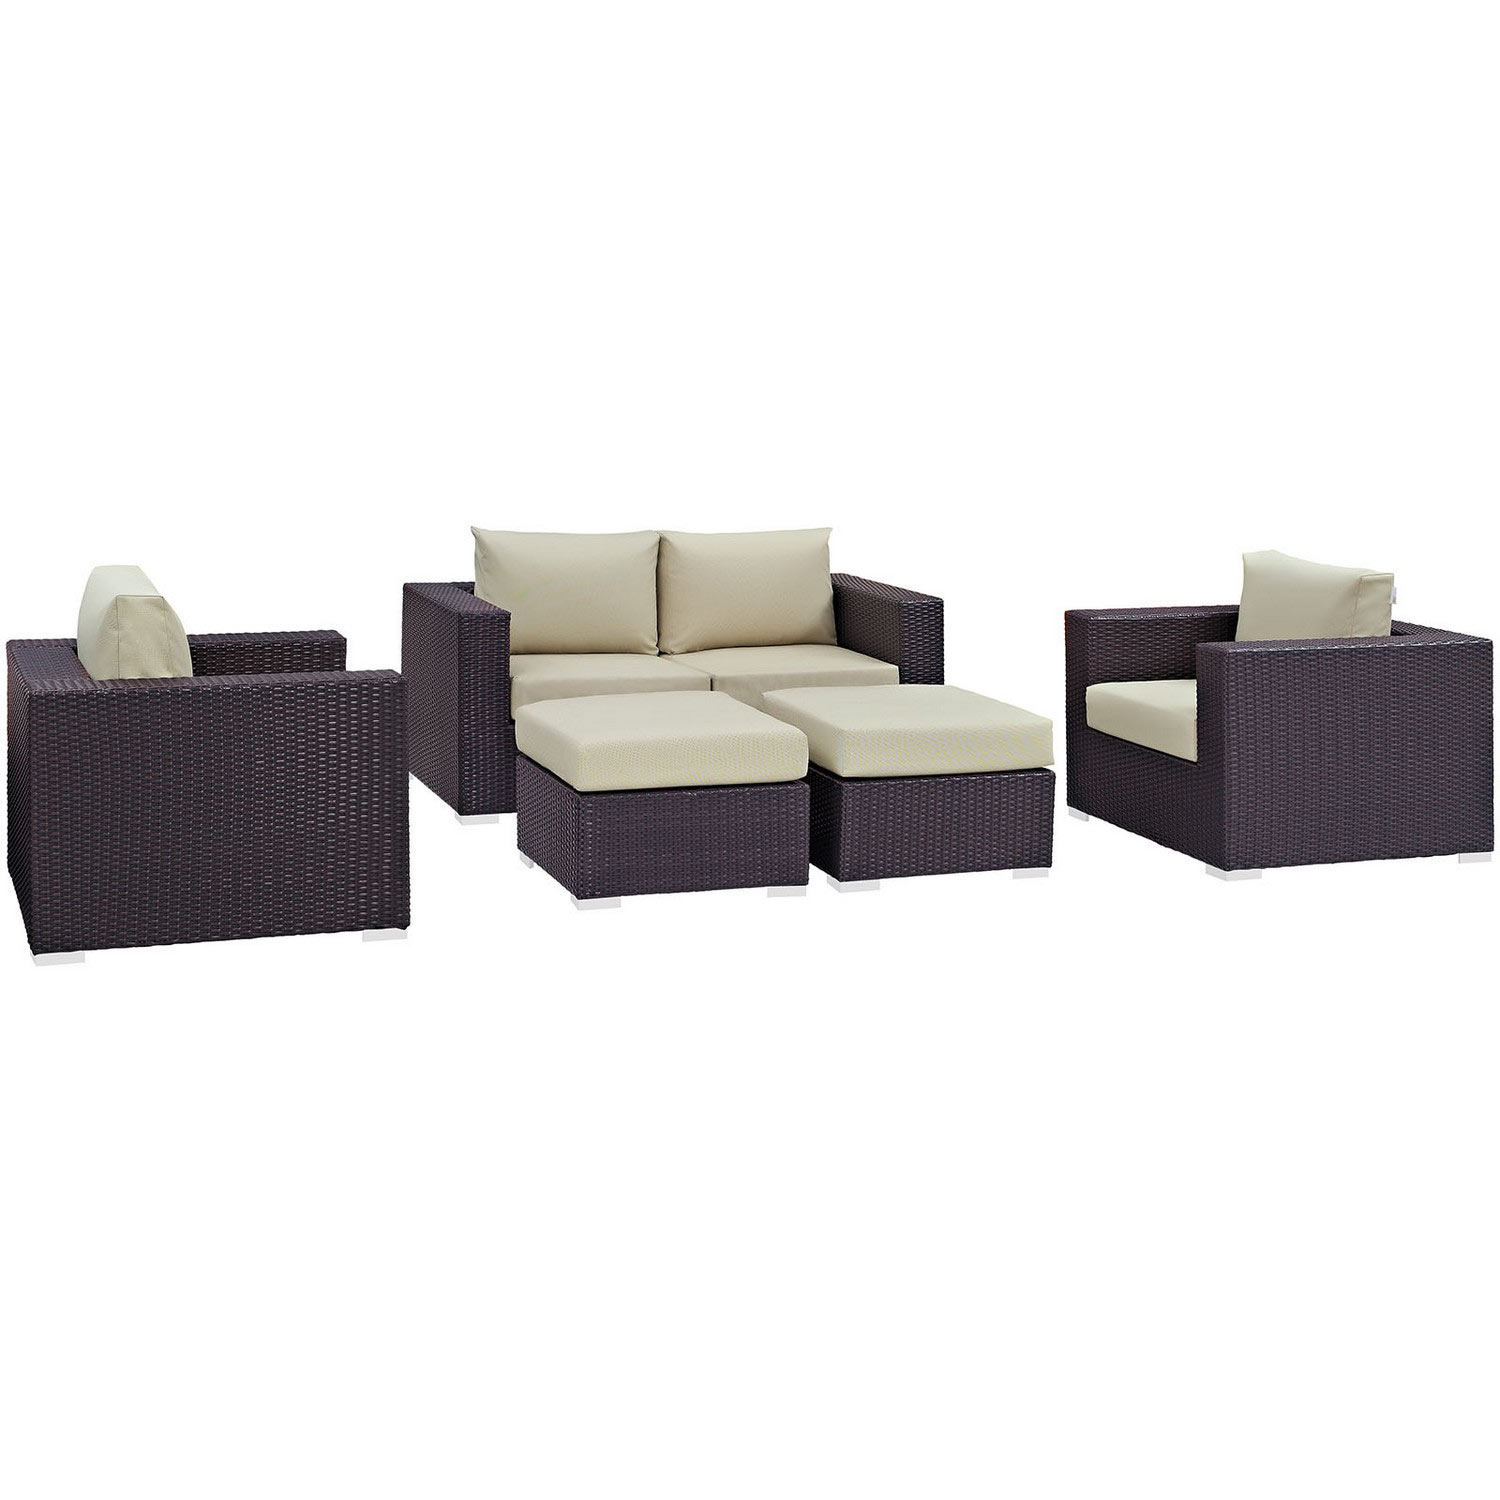 Modway Convene 5 Piece Outdoor Patio Sofa Set - Espresso Beige